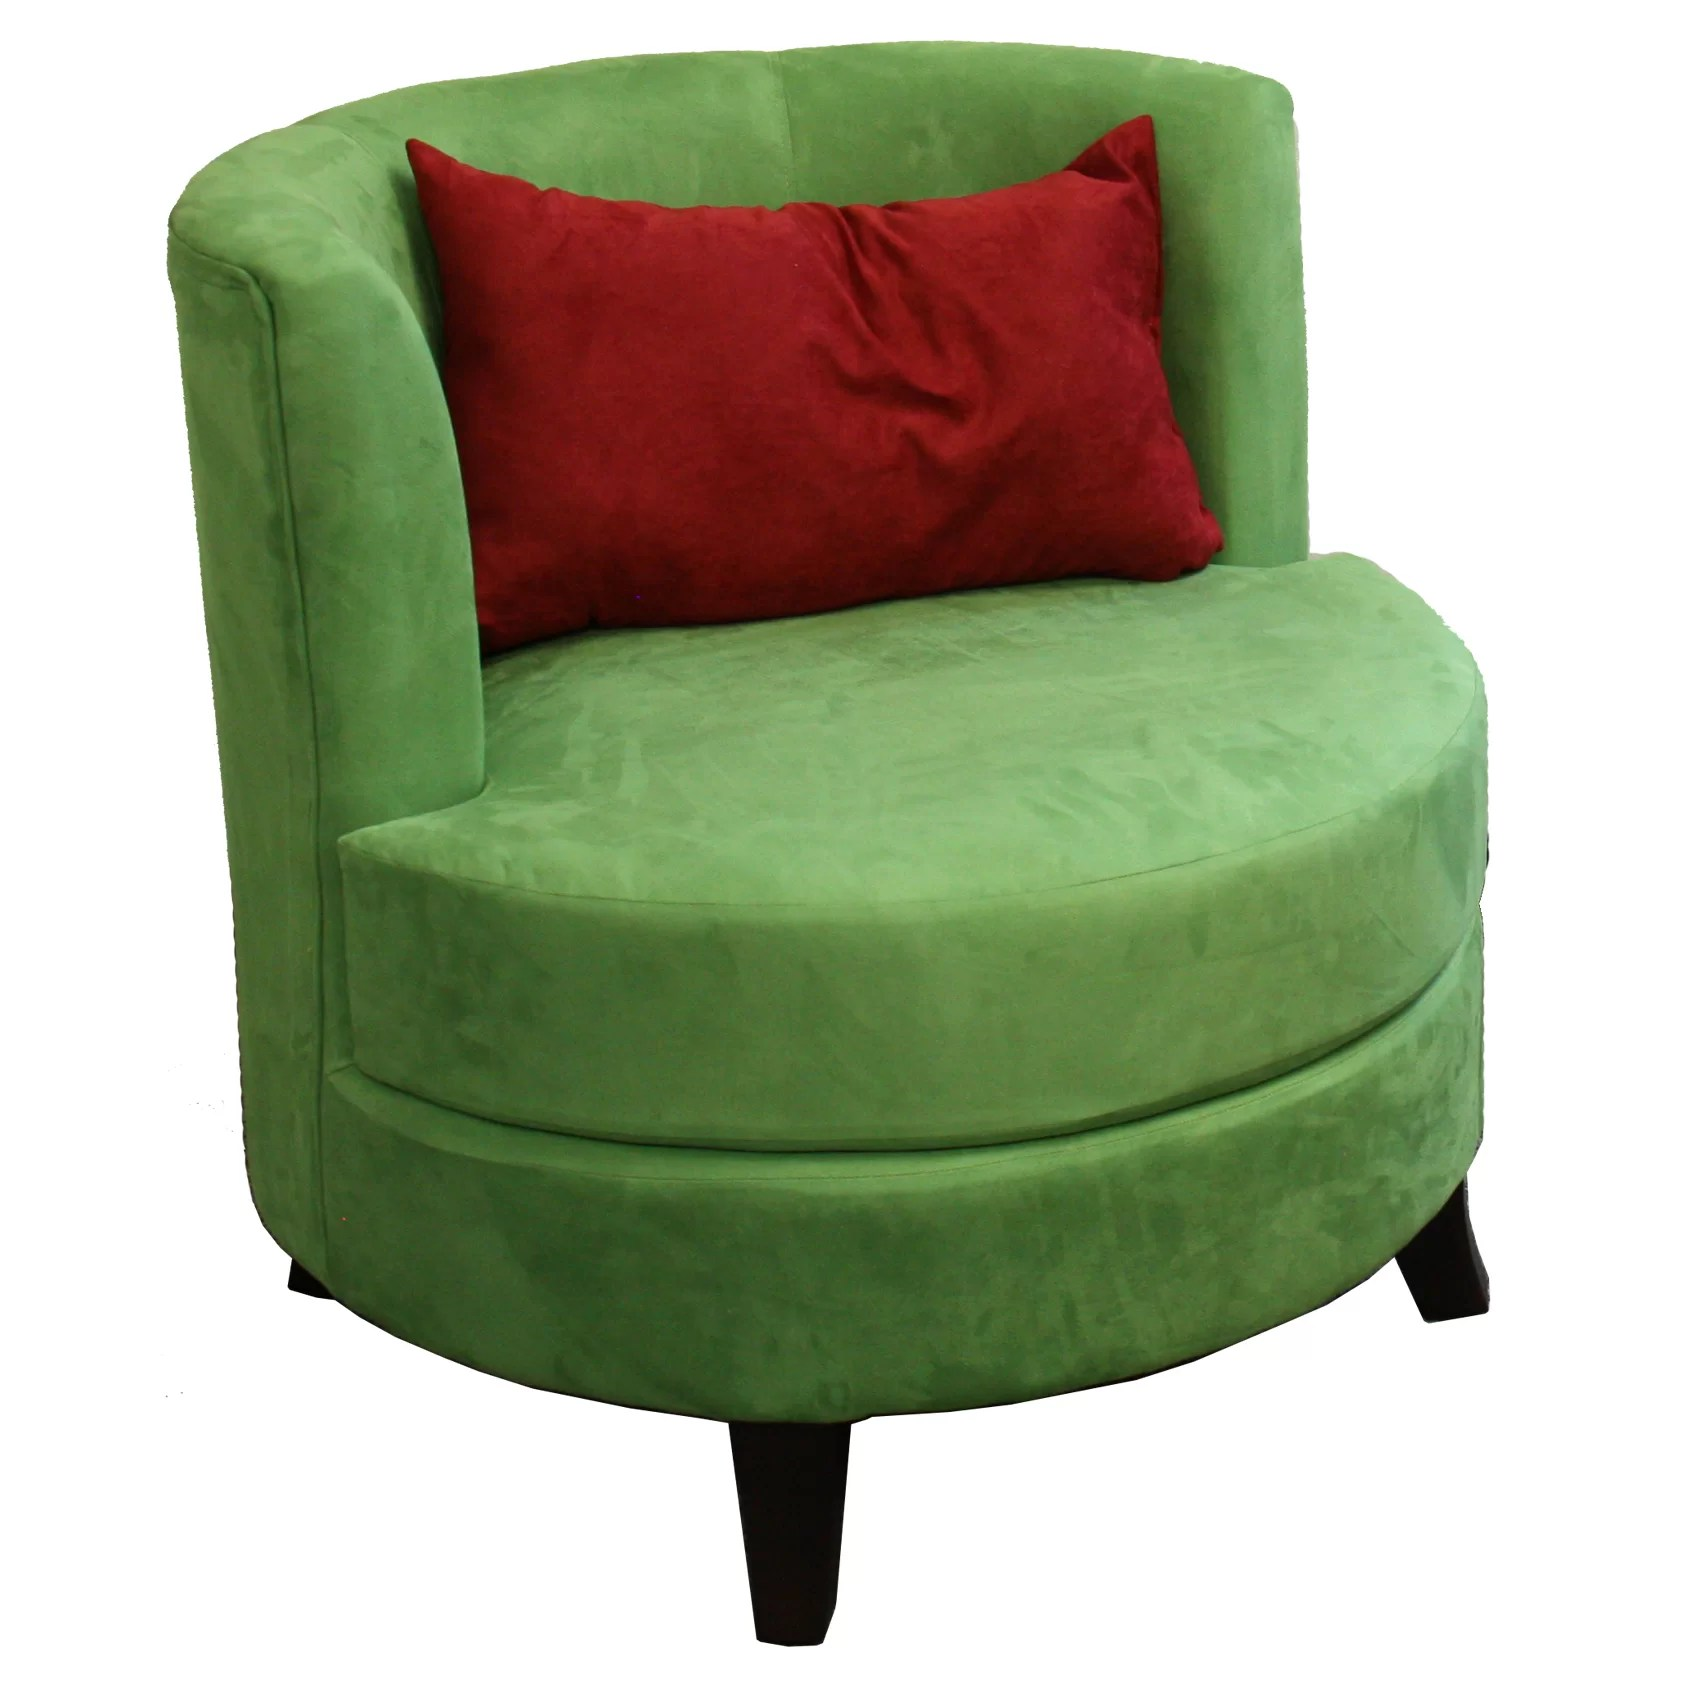 Pillow Chairs Ore Furniture Barrel Chair With Pillow And Reviews Wayfair